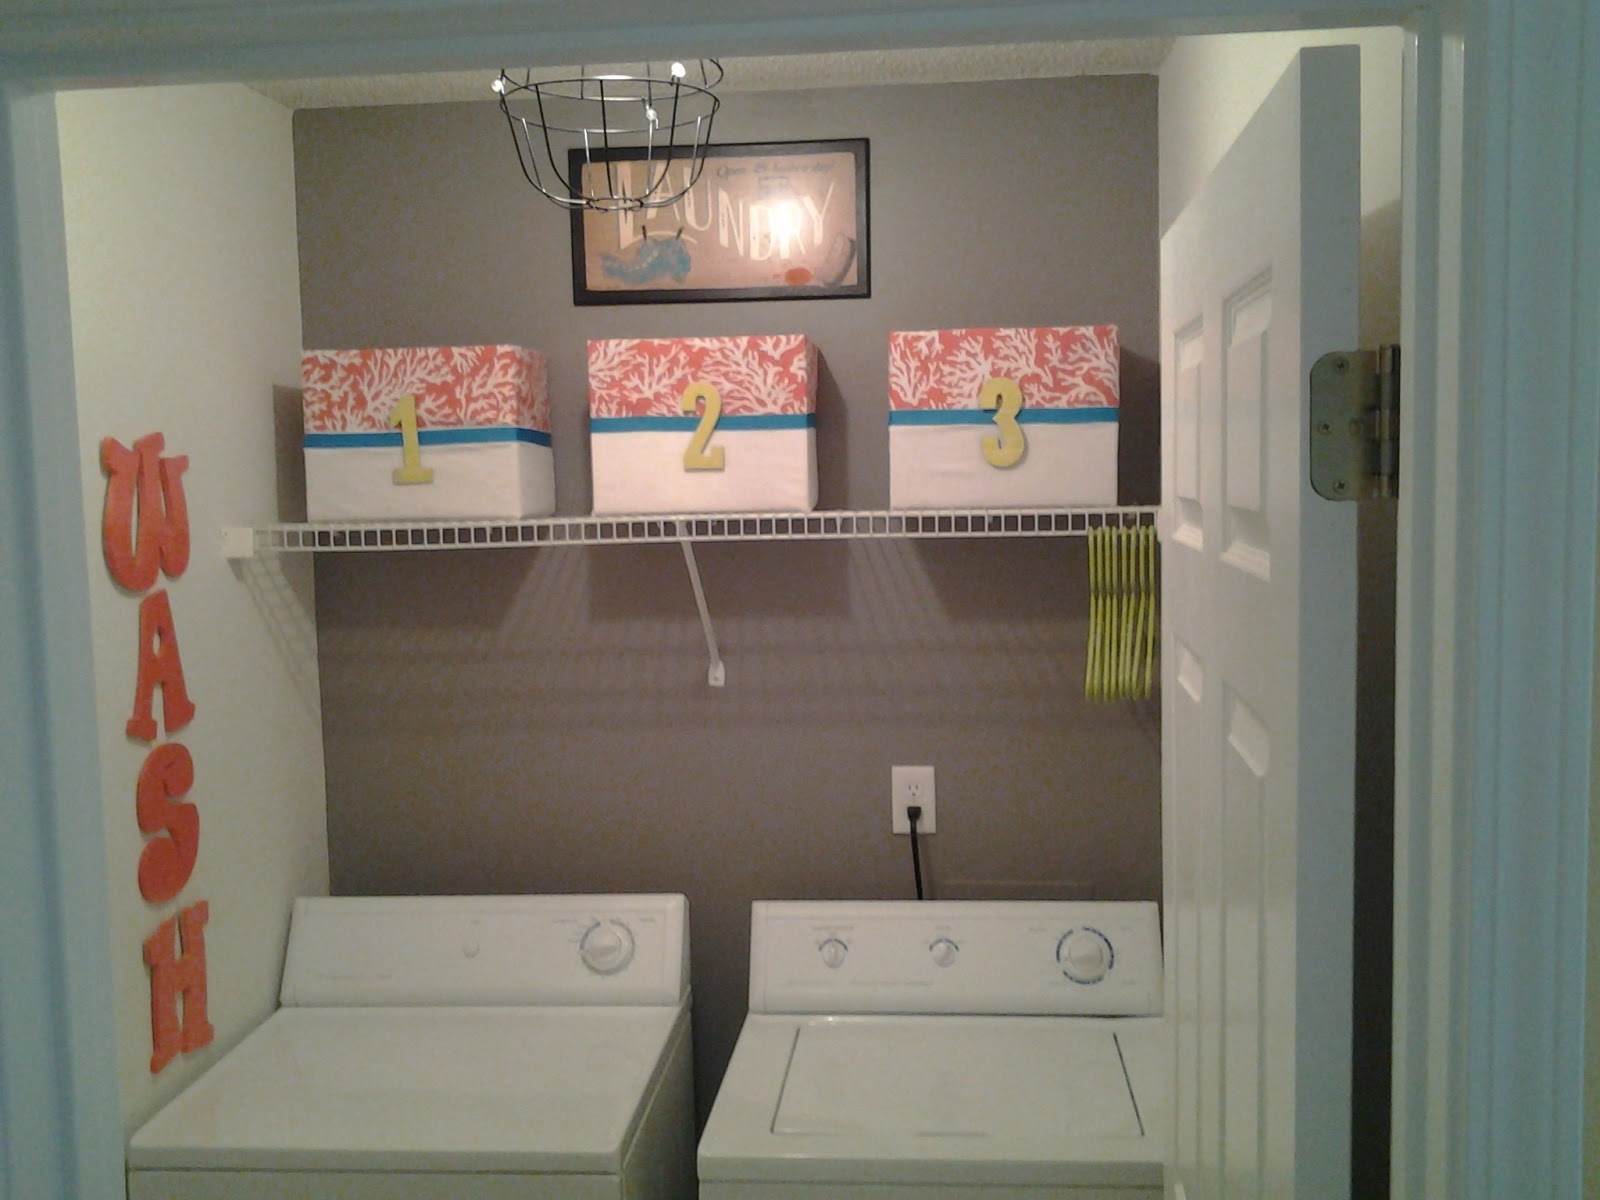 SONG THAT DOESN'T END: Laundry Room REVEAL!